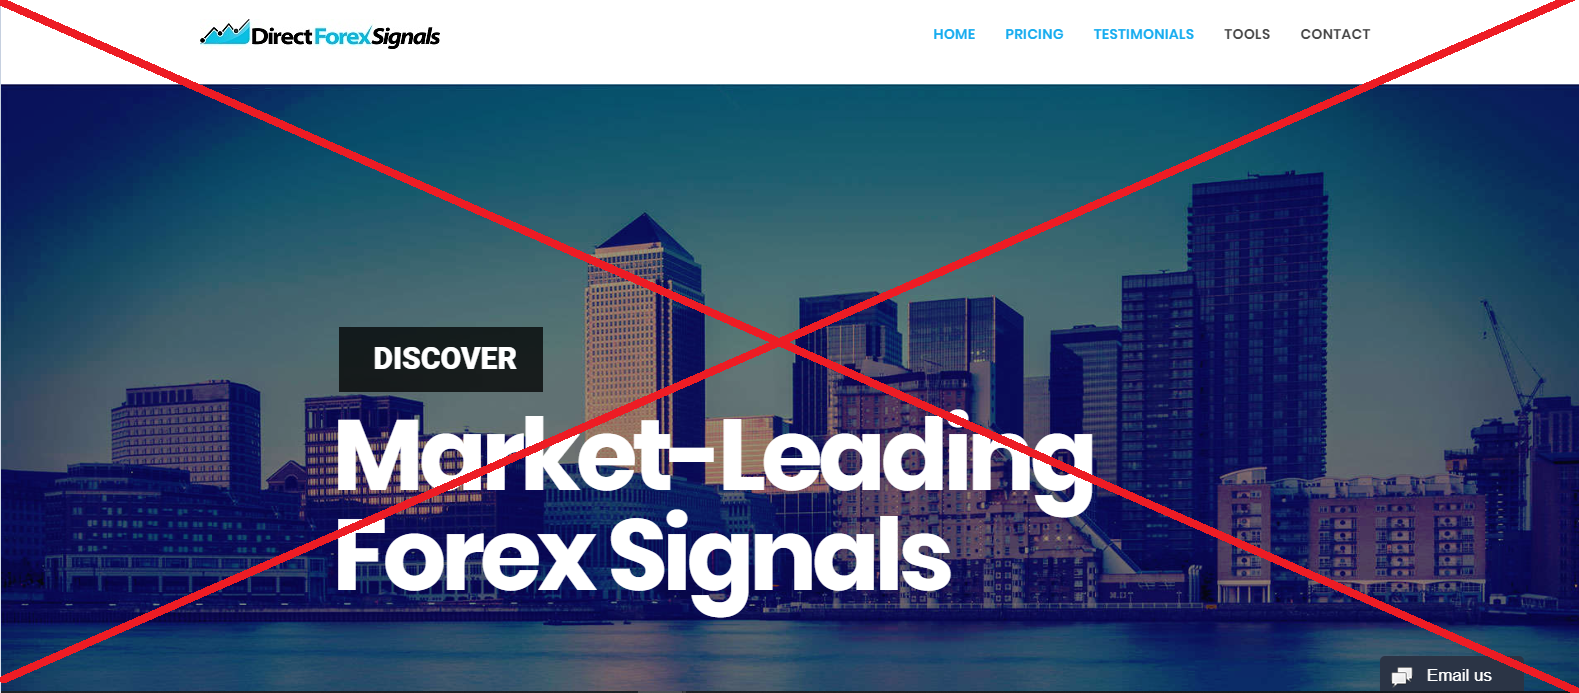 Direct Forex Signals (UK) Review (SCAM Alert) - Forex Signals